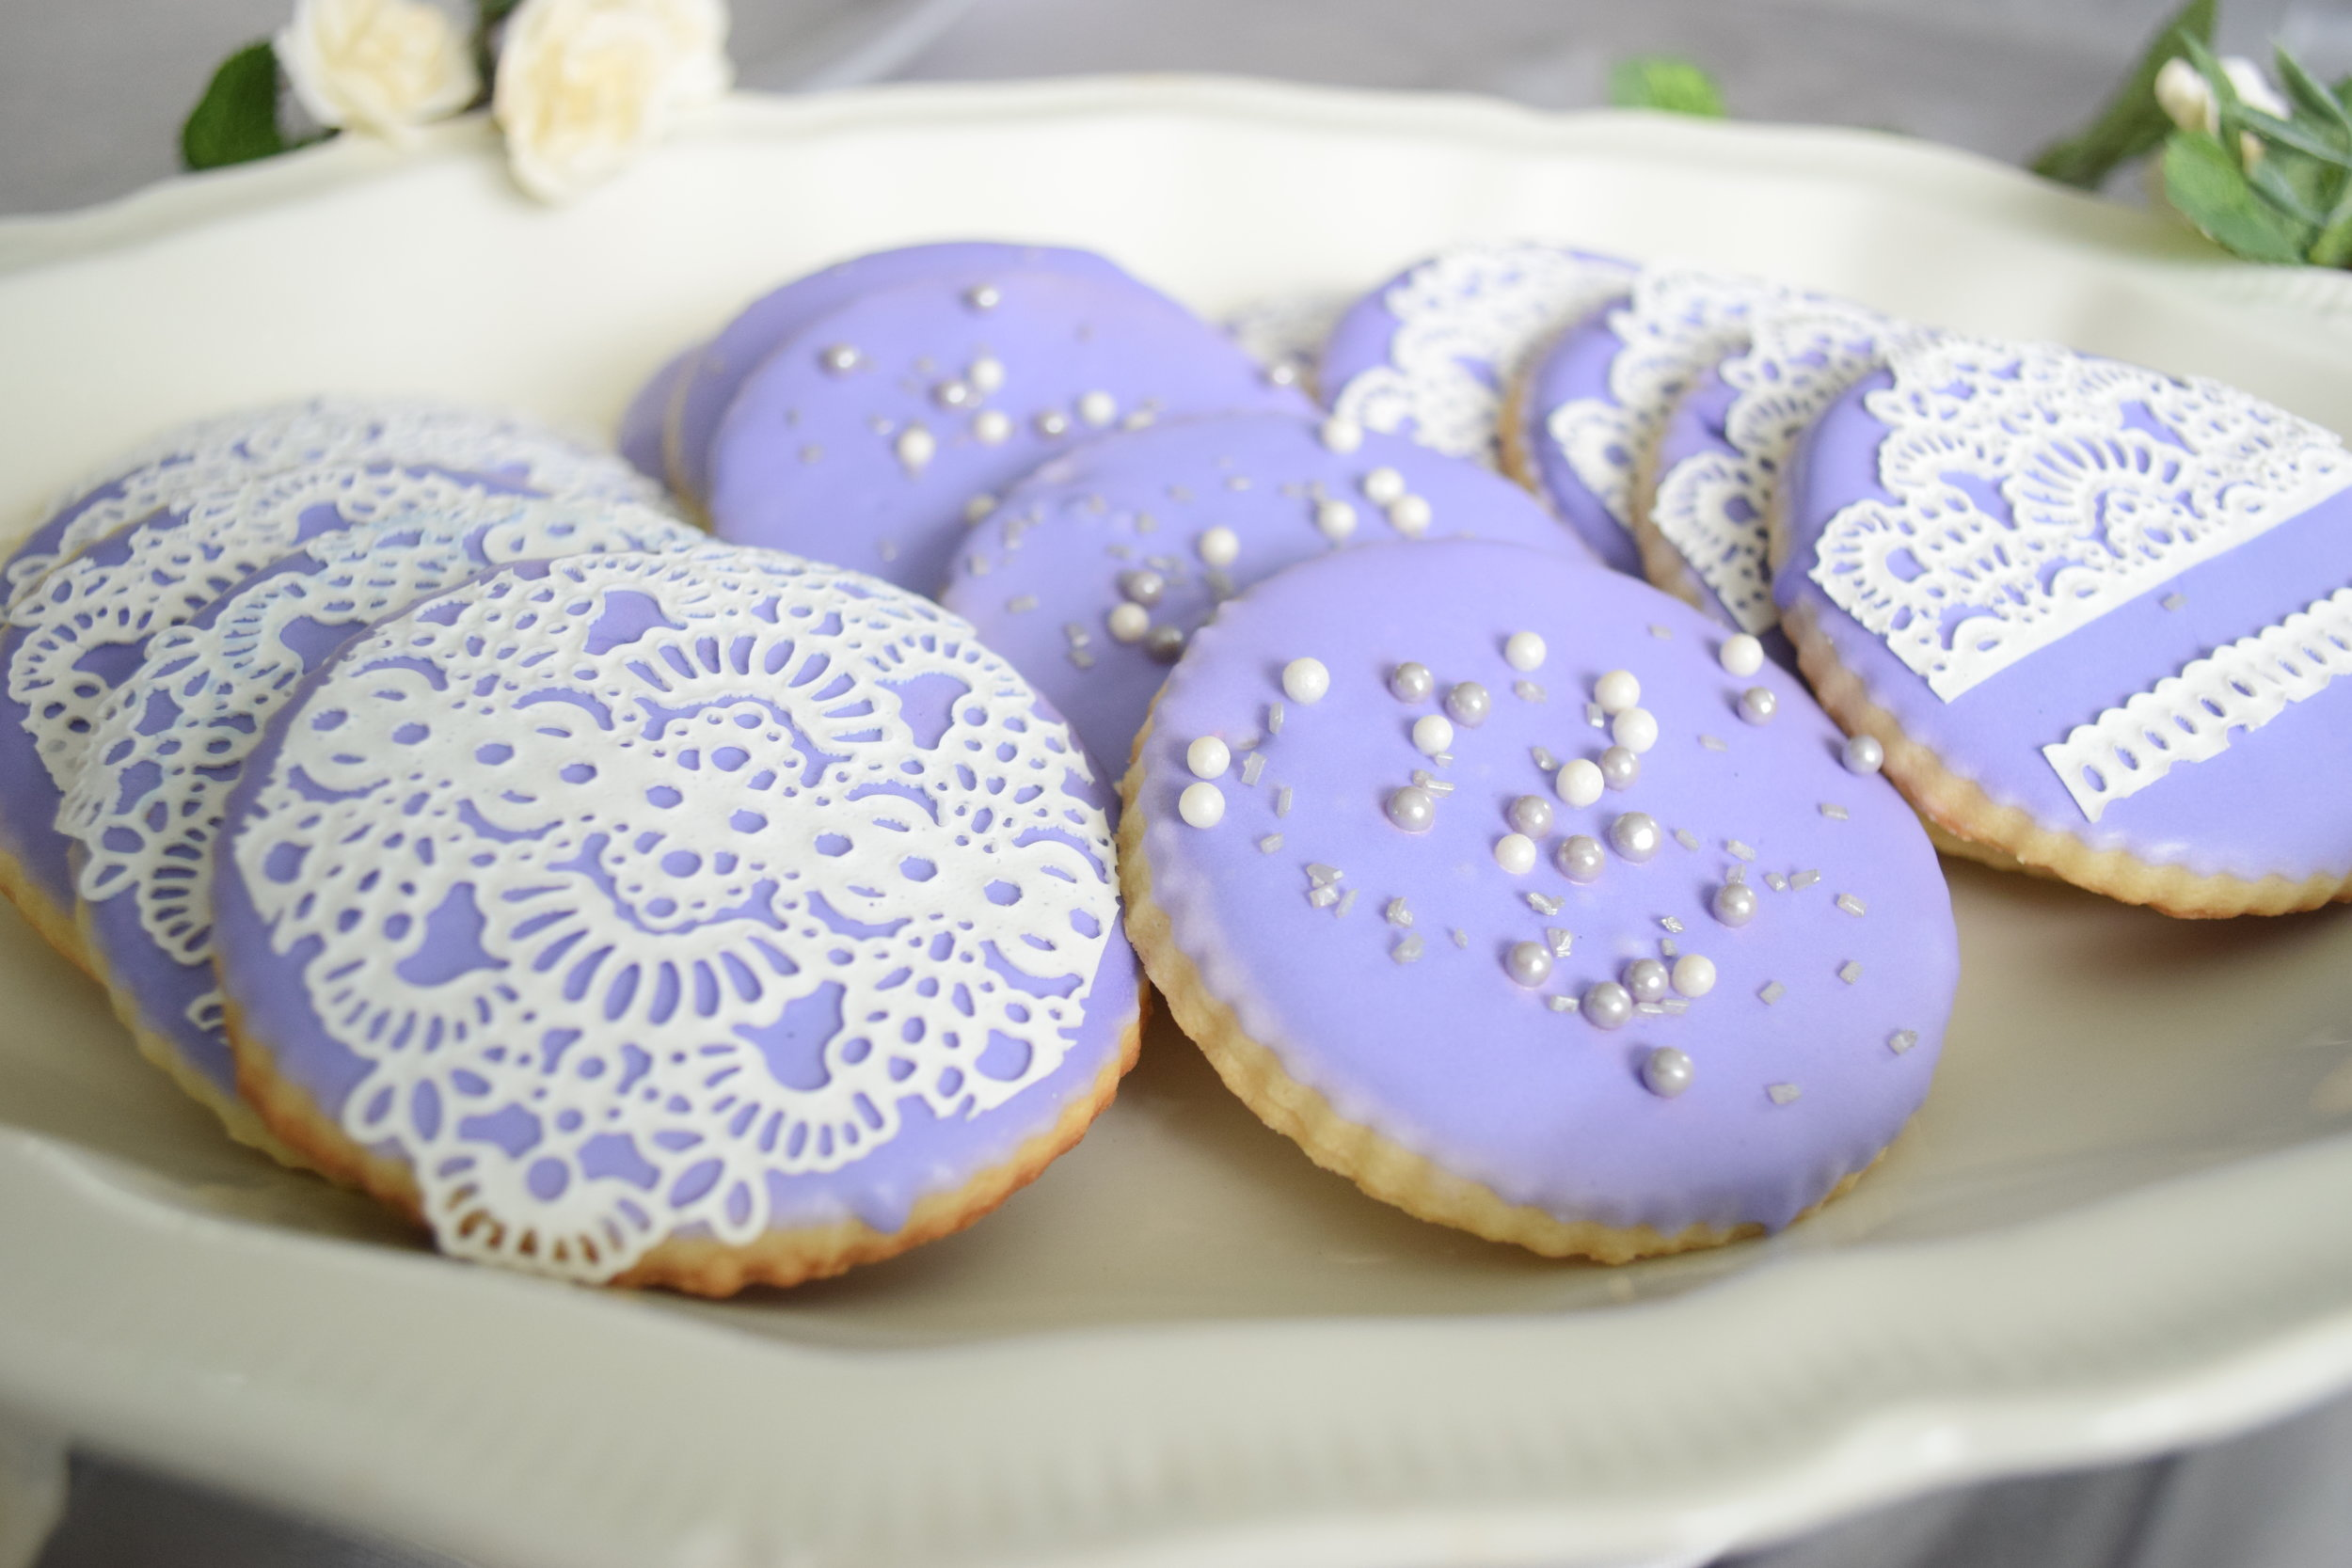 Lavendar and Lace Sugar Cookies (4).JPG